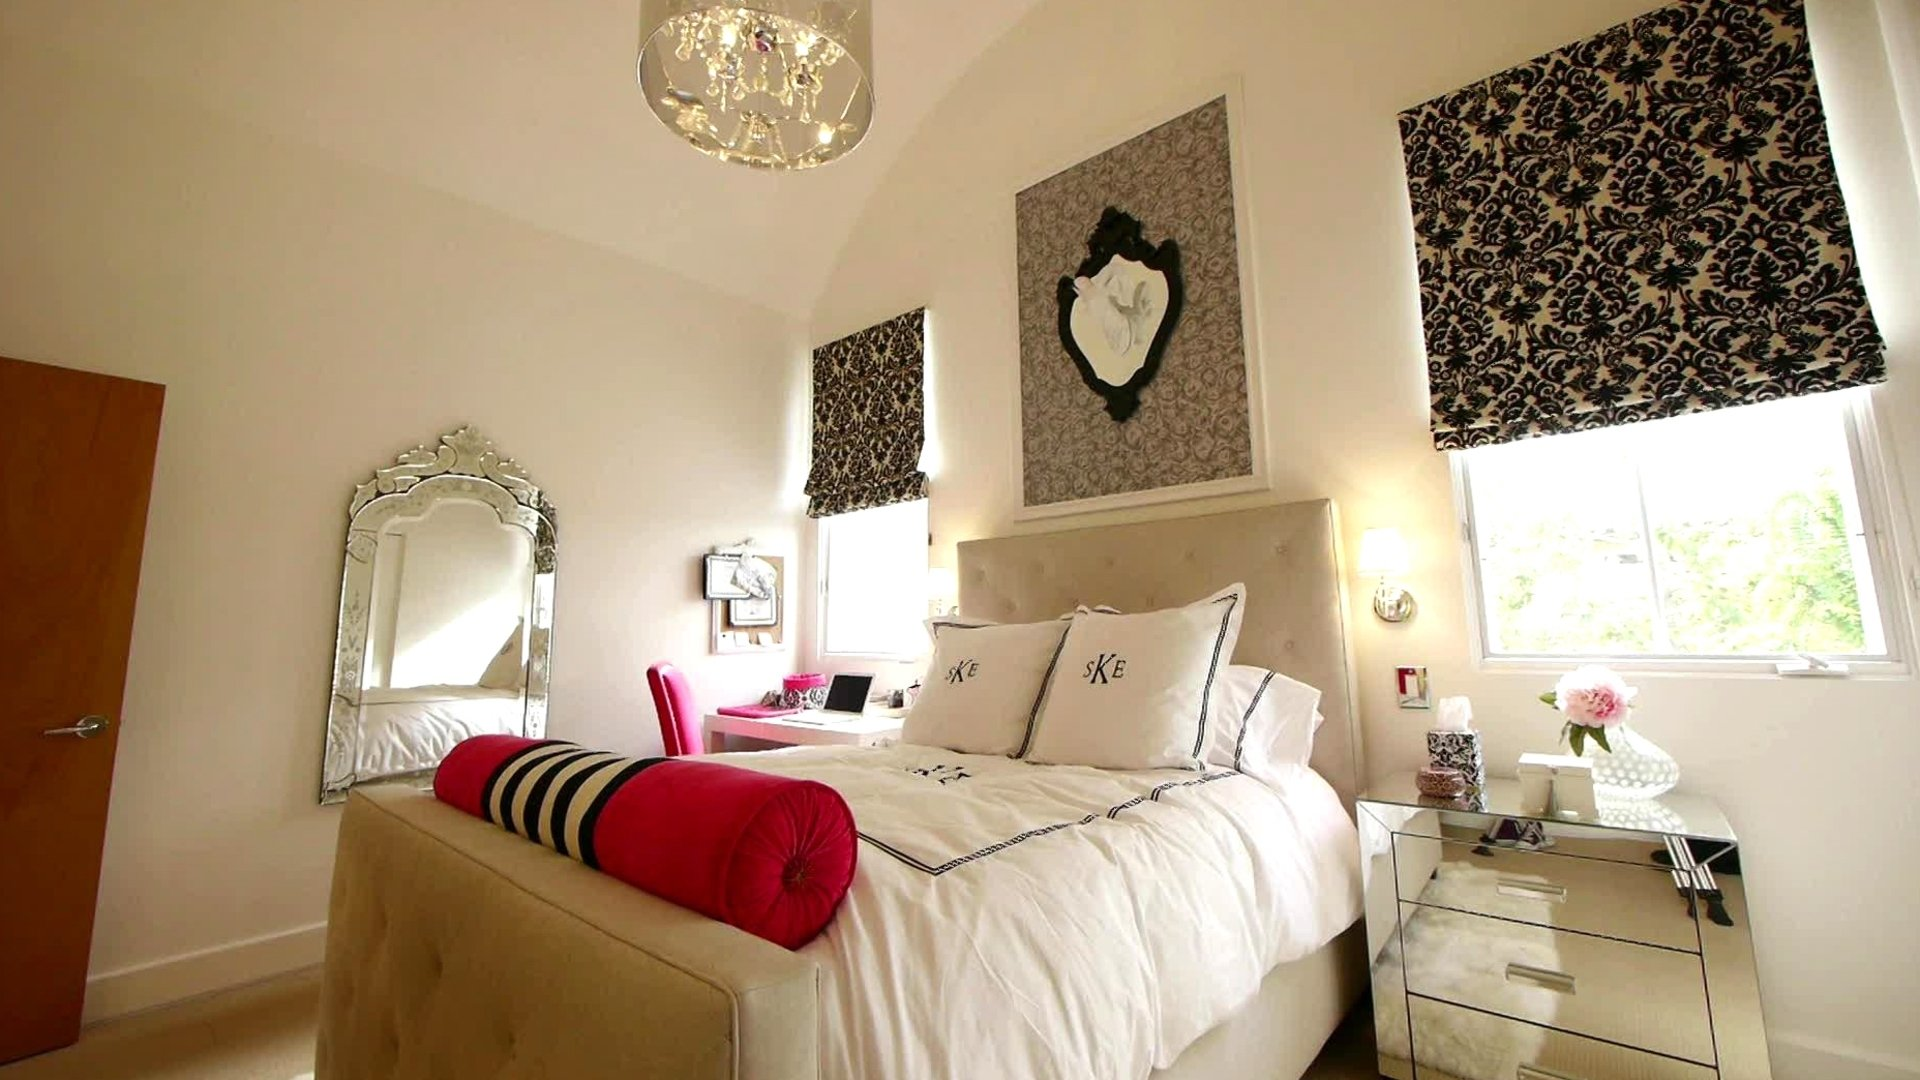 10 Fantastic Room Ideas For Teenage Girls teen bedrooms ideas for decorating teen rooms hgtv 4